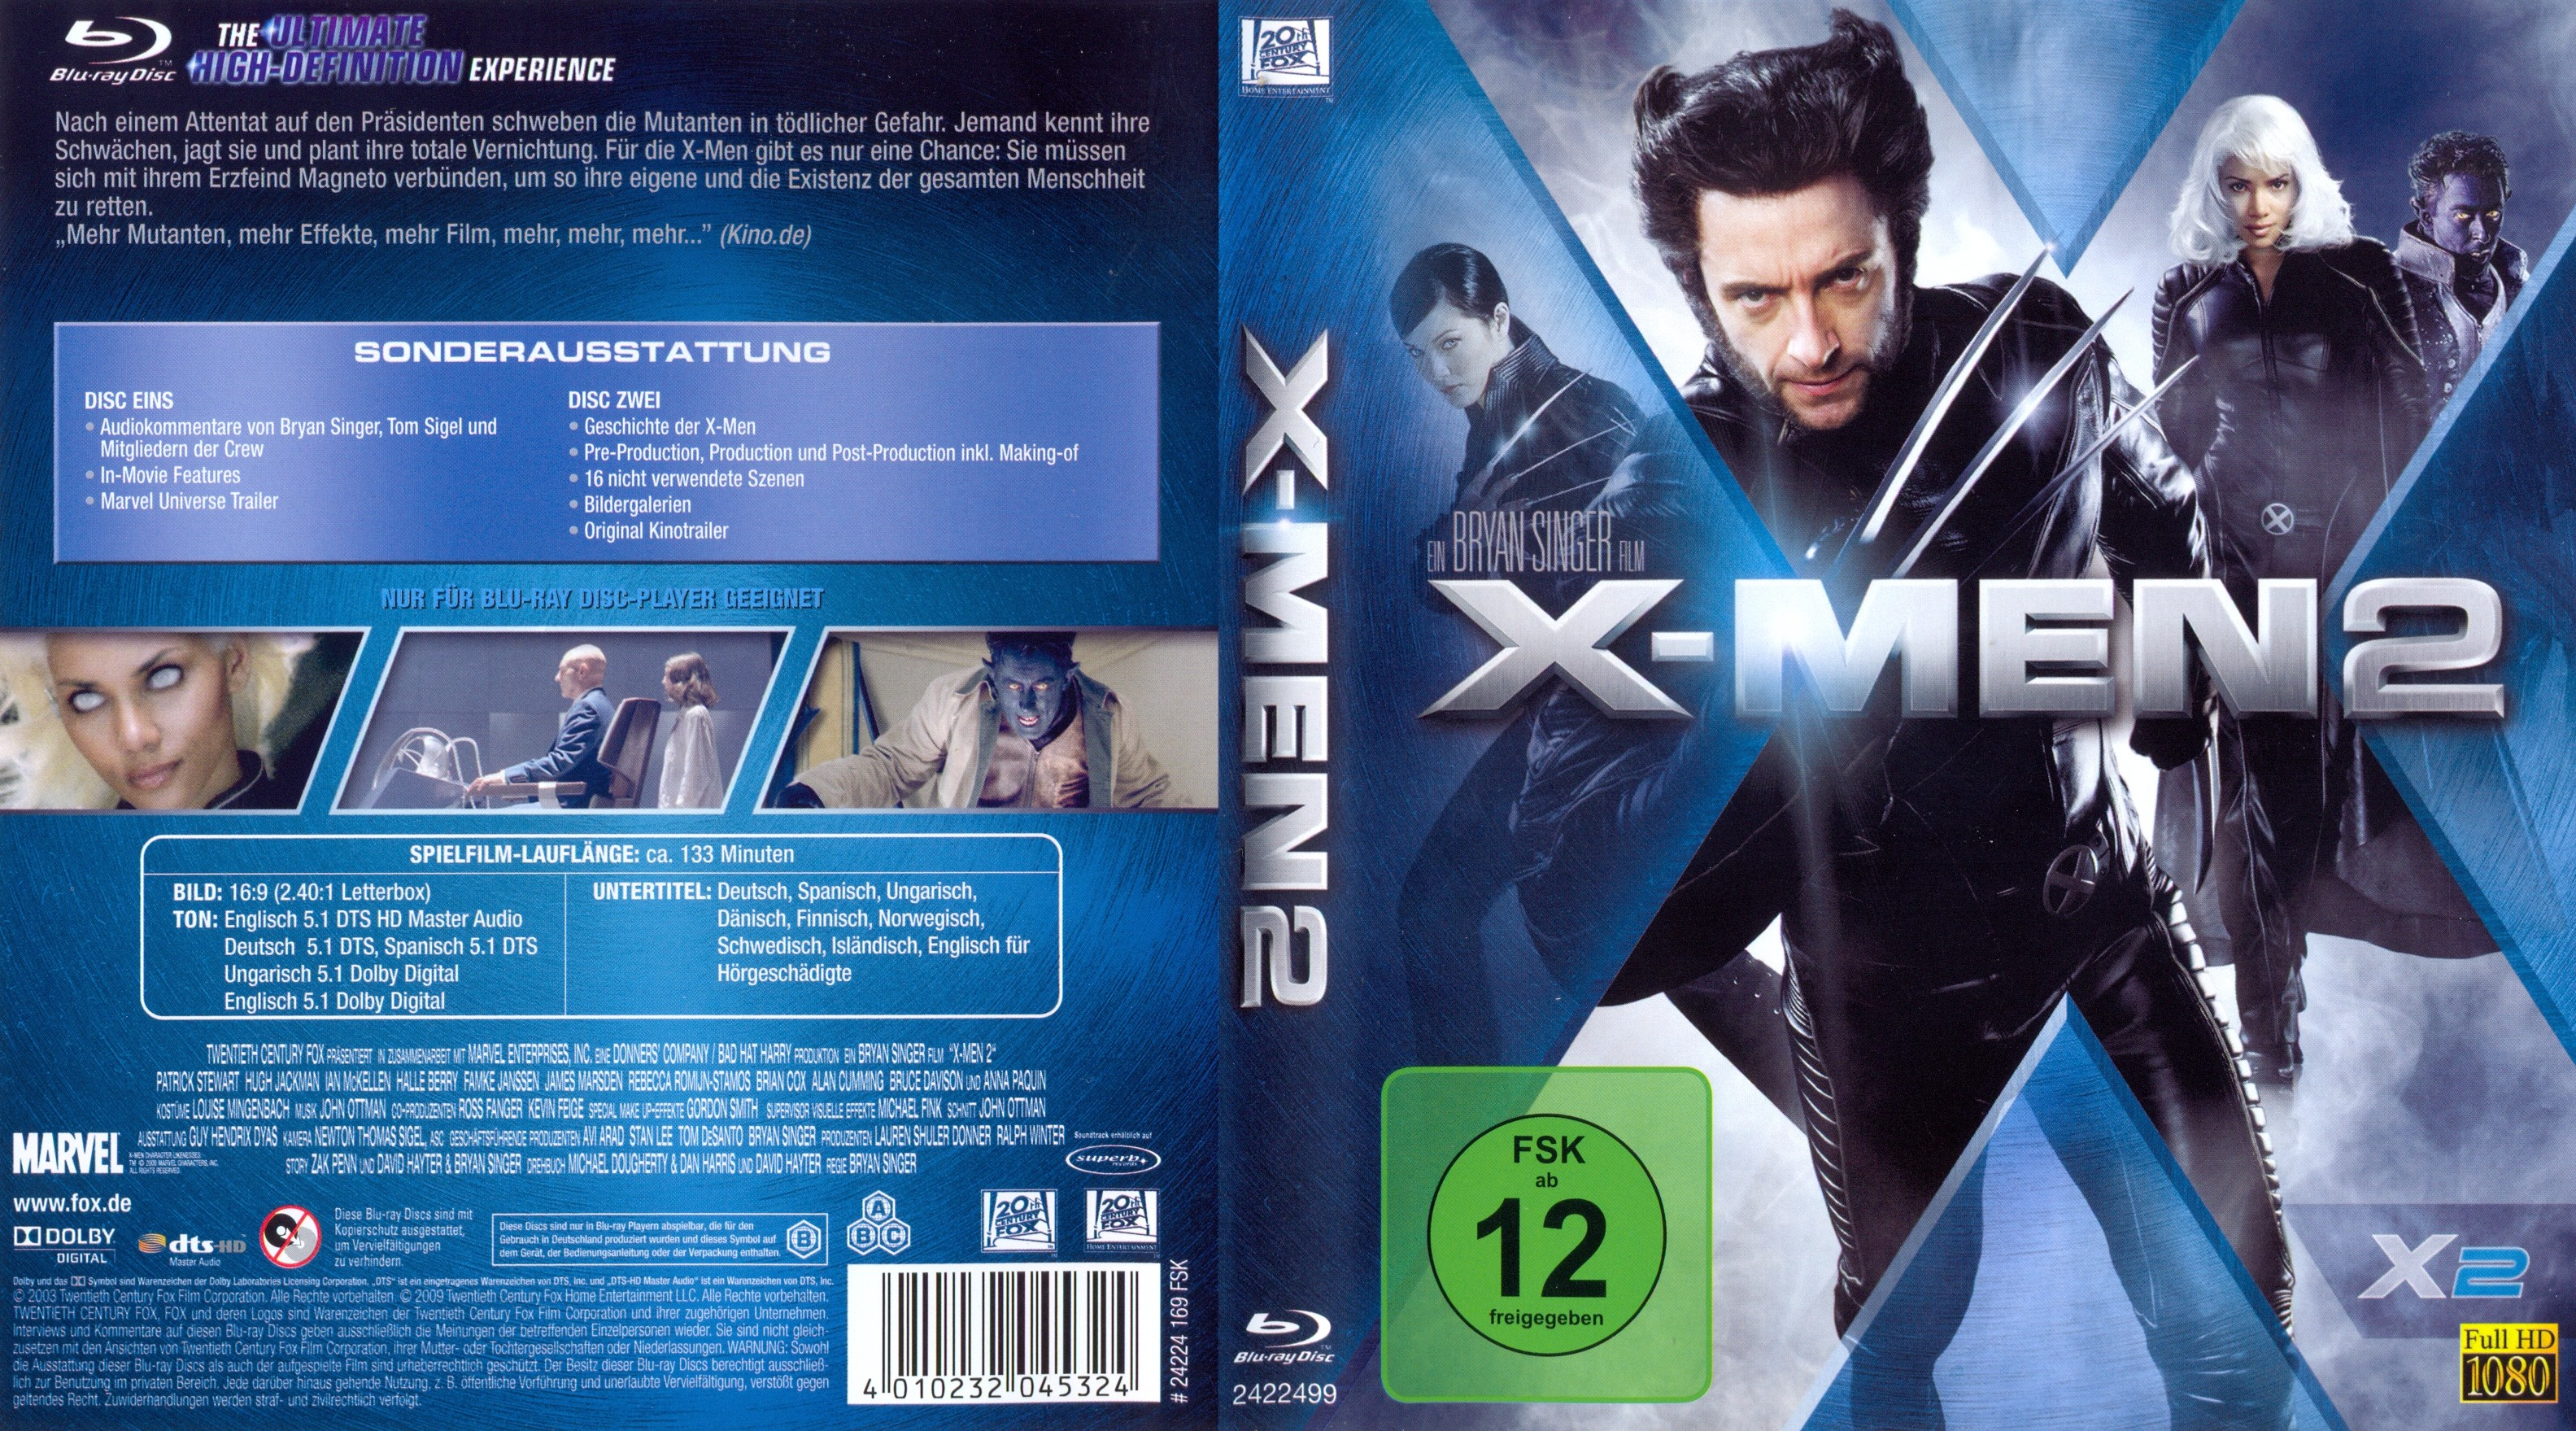 X-men 2 (2003) hindi dubbed watch full movie online and hd.